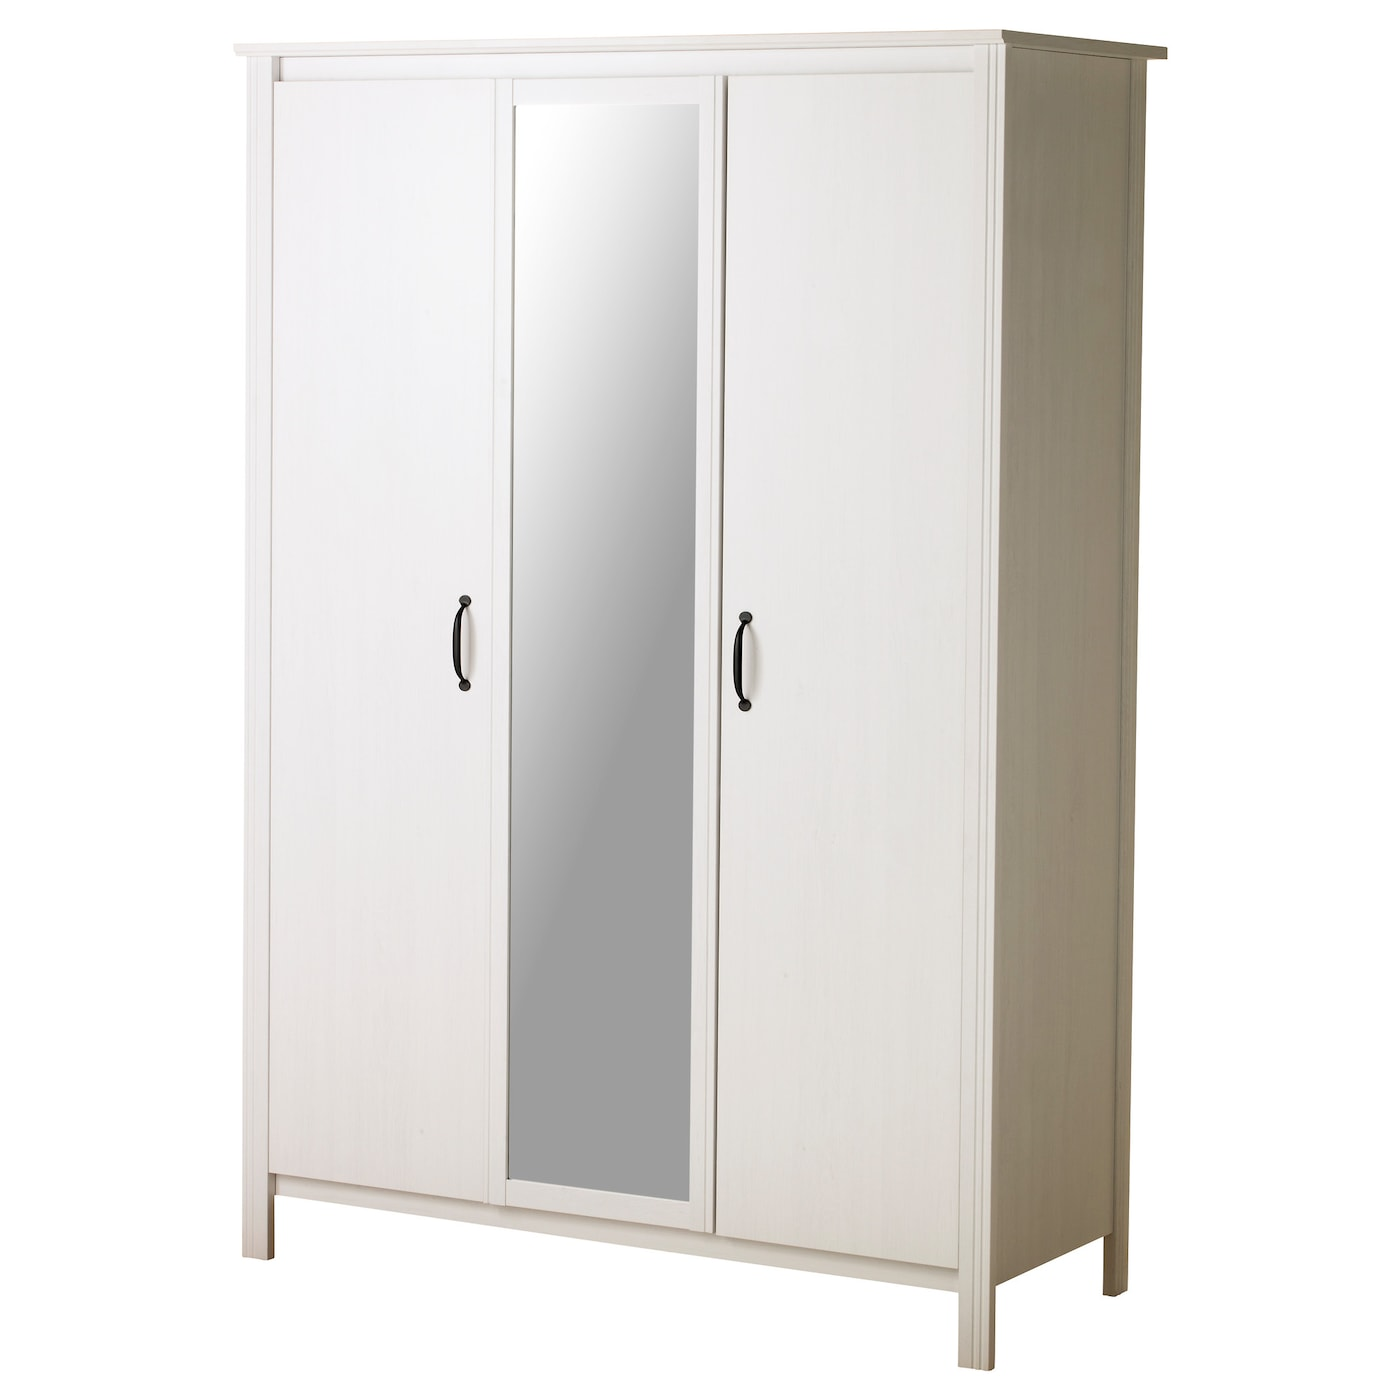 Brusali wardrobe with 3 doors white 131x190 cm ikea for Garderobe 90 breit